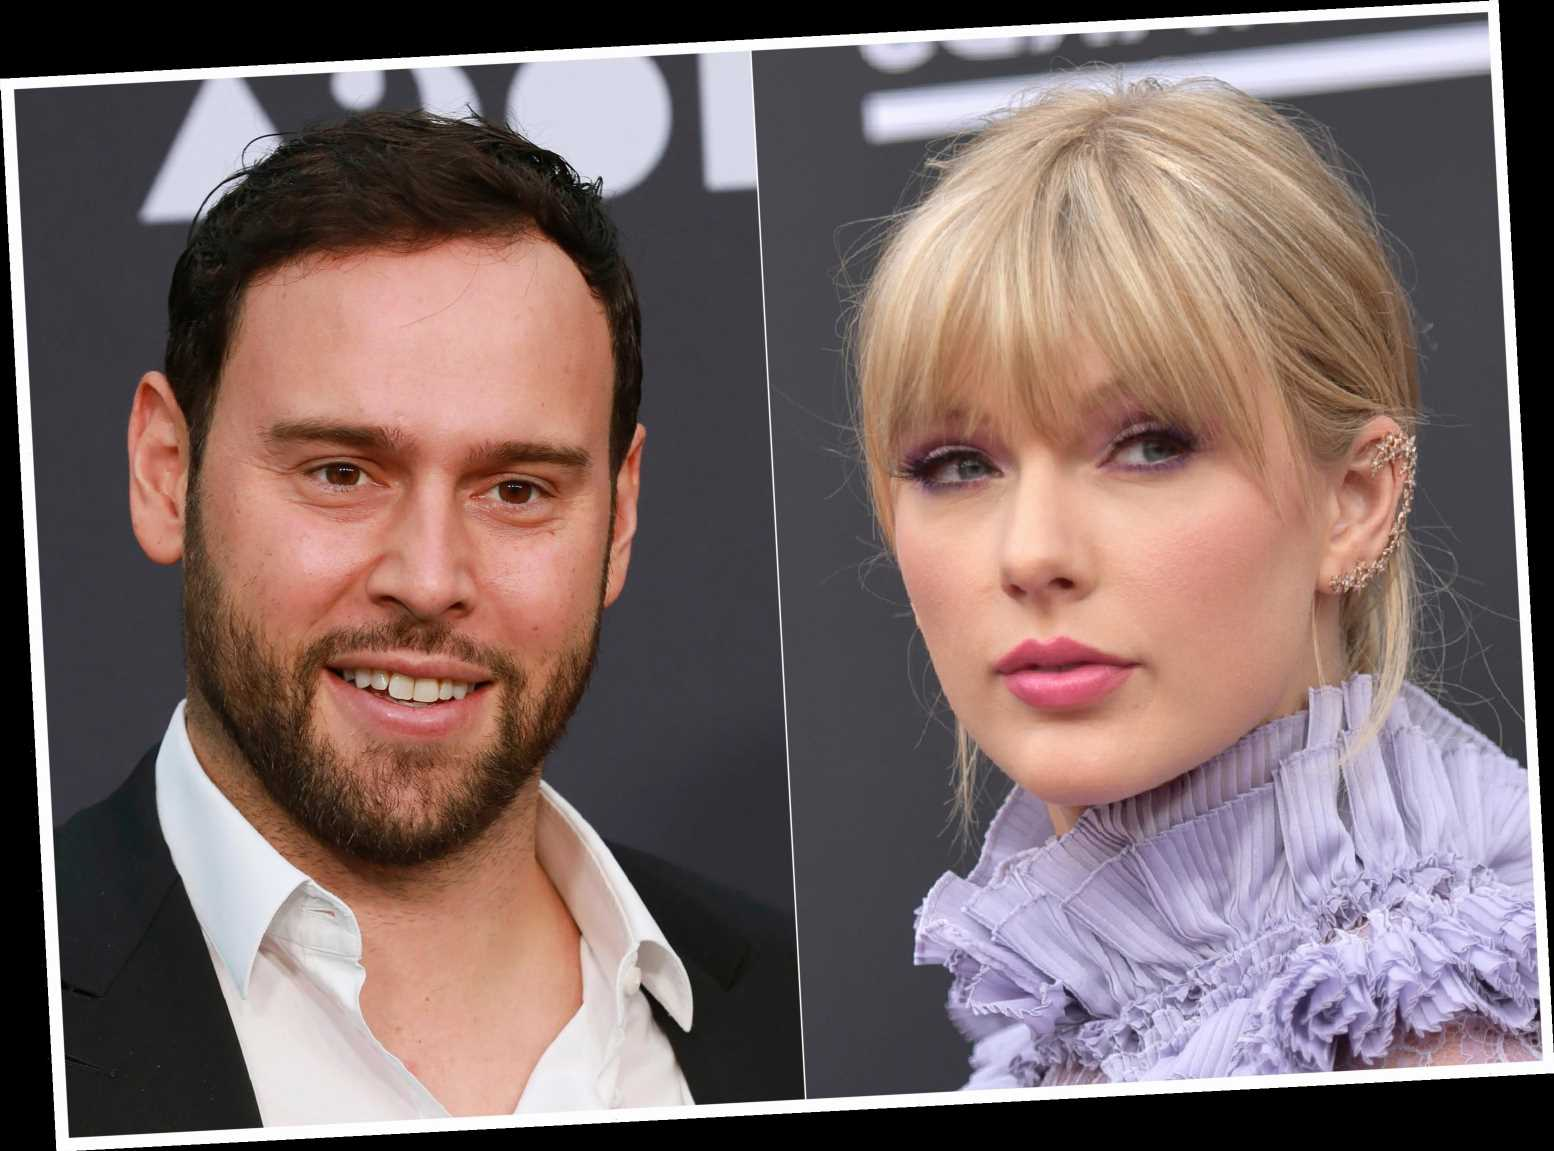 What's Scooter Braun's net worth and when was he Taylor Swift's manager? – The Sun